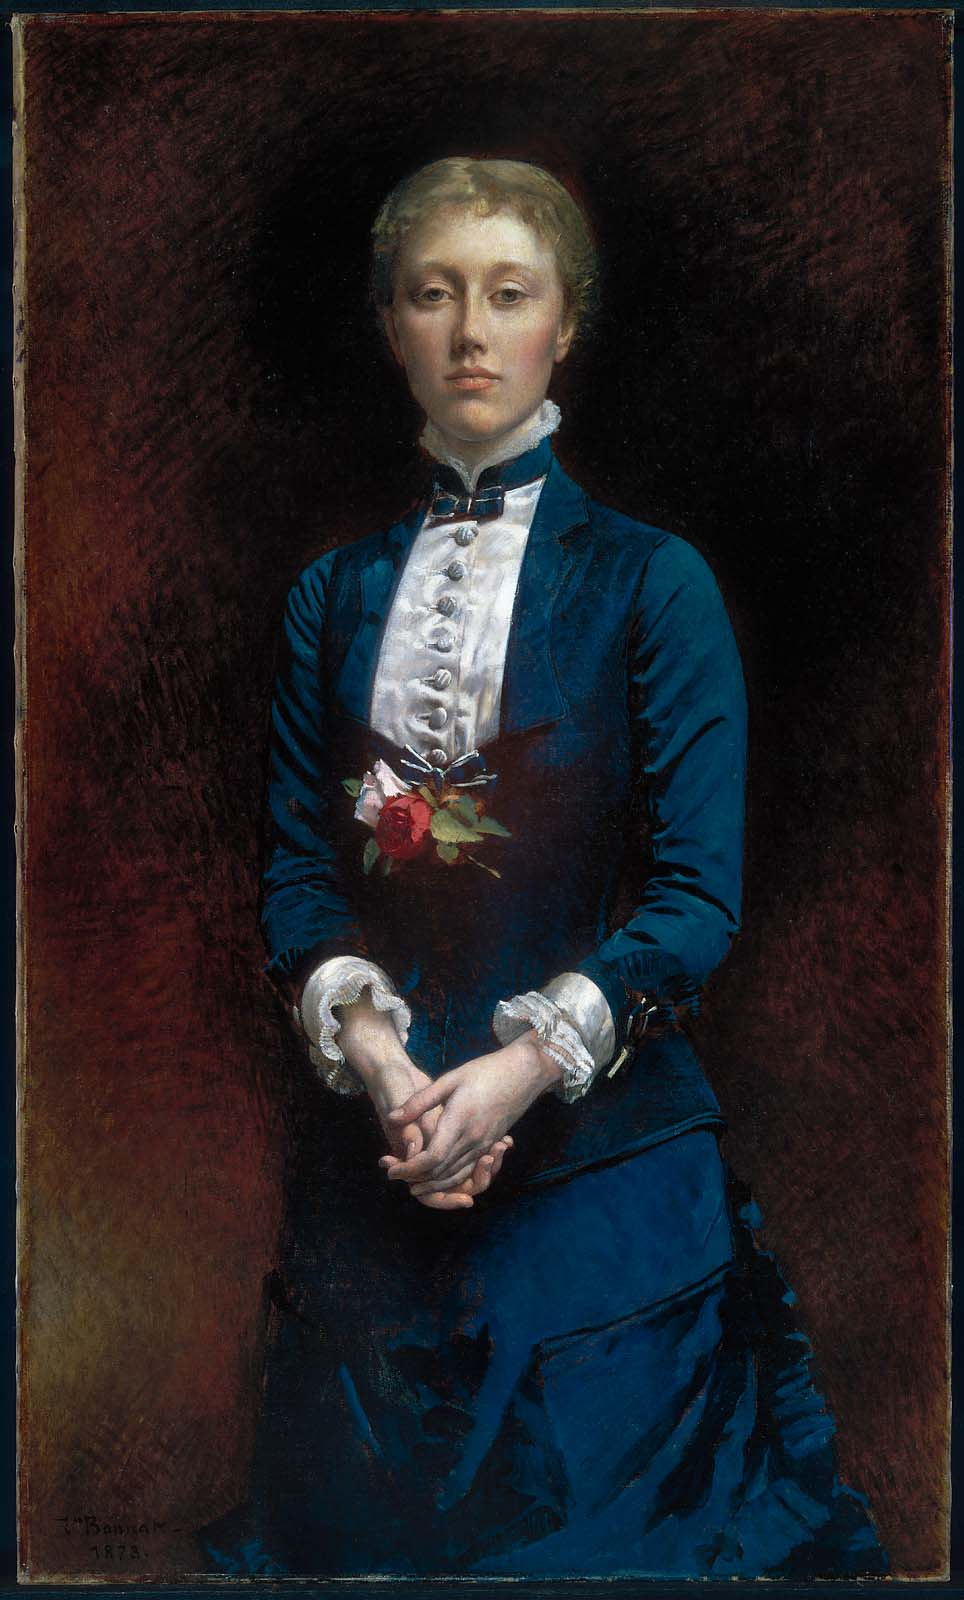 b4ba26d2d4bd Mary Sears (later Mrs. Francis Shaw)